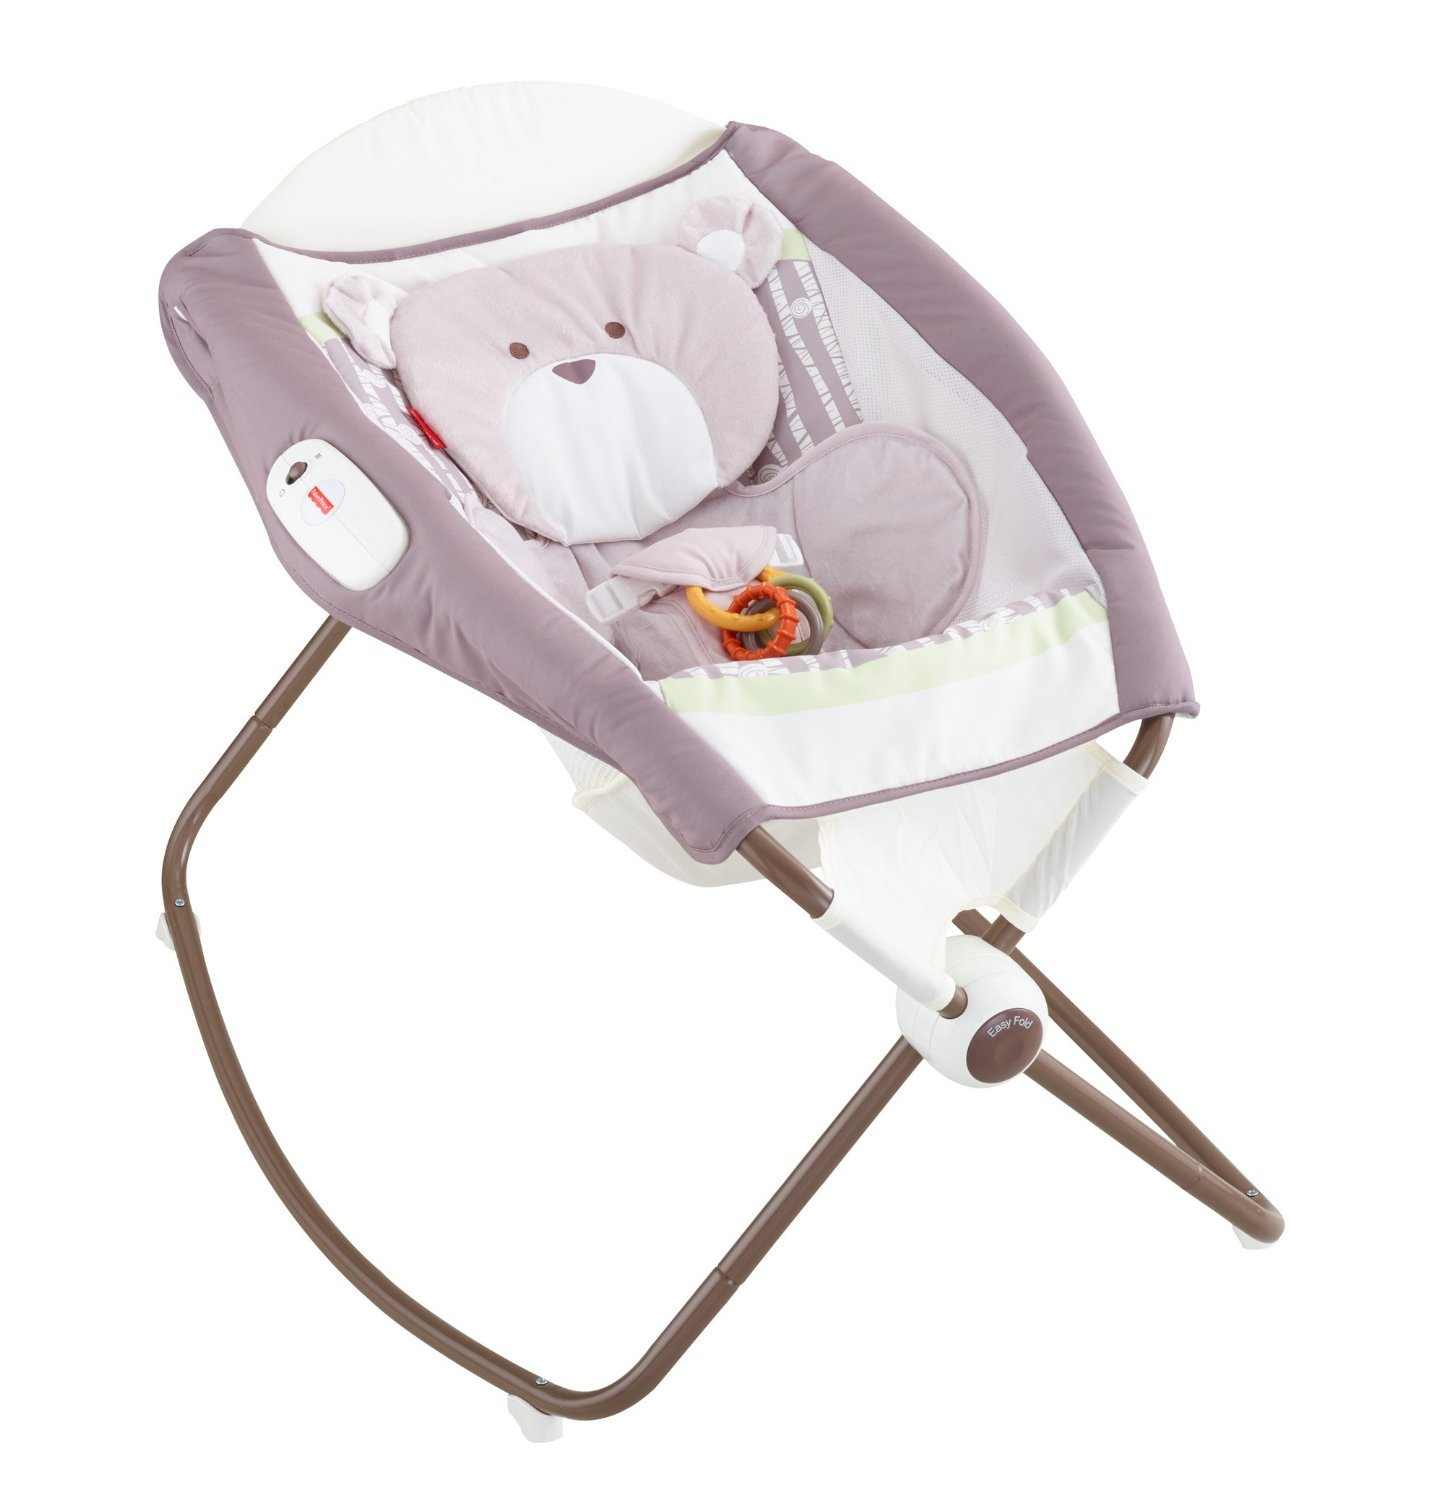 Fisher-Price Deluxe Newborn Rock 'n Play Sleeper, Snugabear Forest